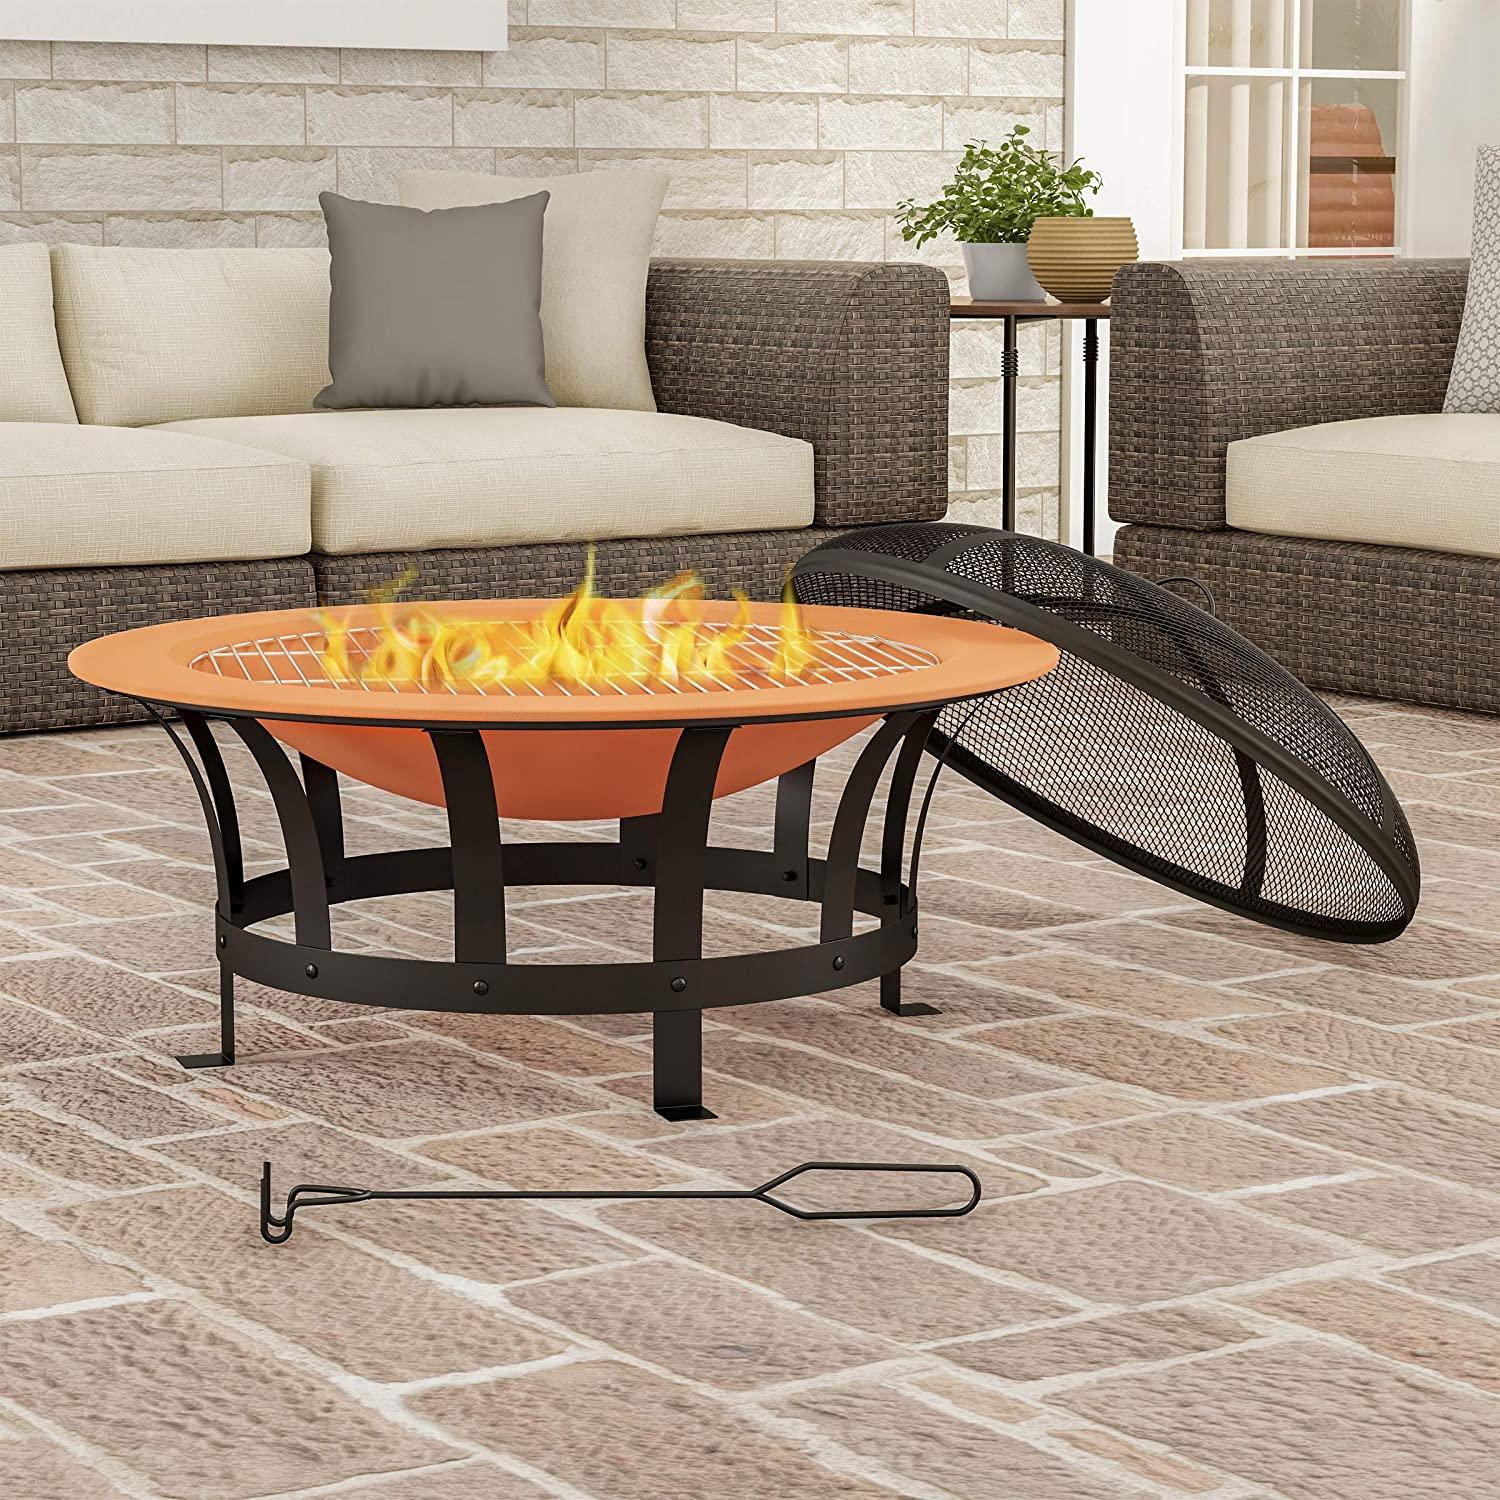 "Pure Garden 50-LG1204 Round Large Copper Colored Steel Bowl, Mesh Spark Screen, Log Poker & Grilling Grate 30"" Outdoor Deep Fire Pit, Brown"